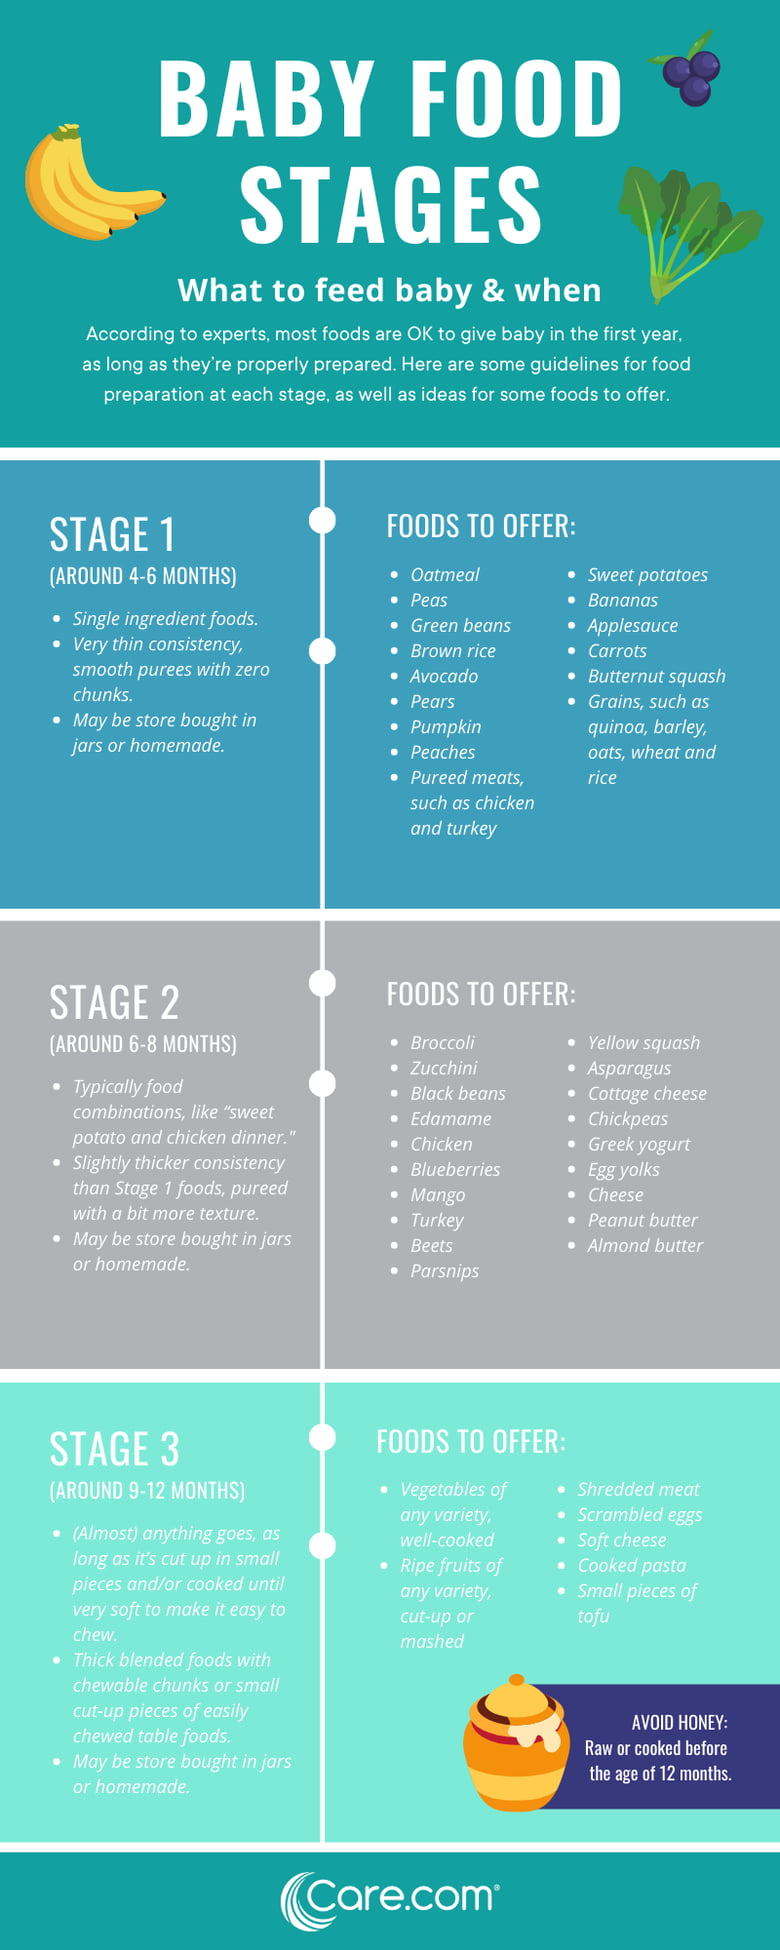 Stage 2 Baby Food When Is A Child Ready To Try A Bit More Texture Care Com